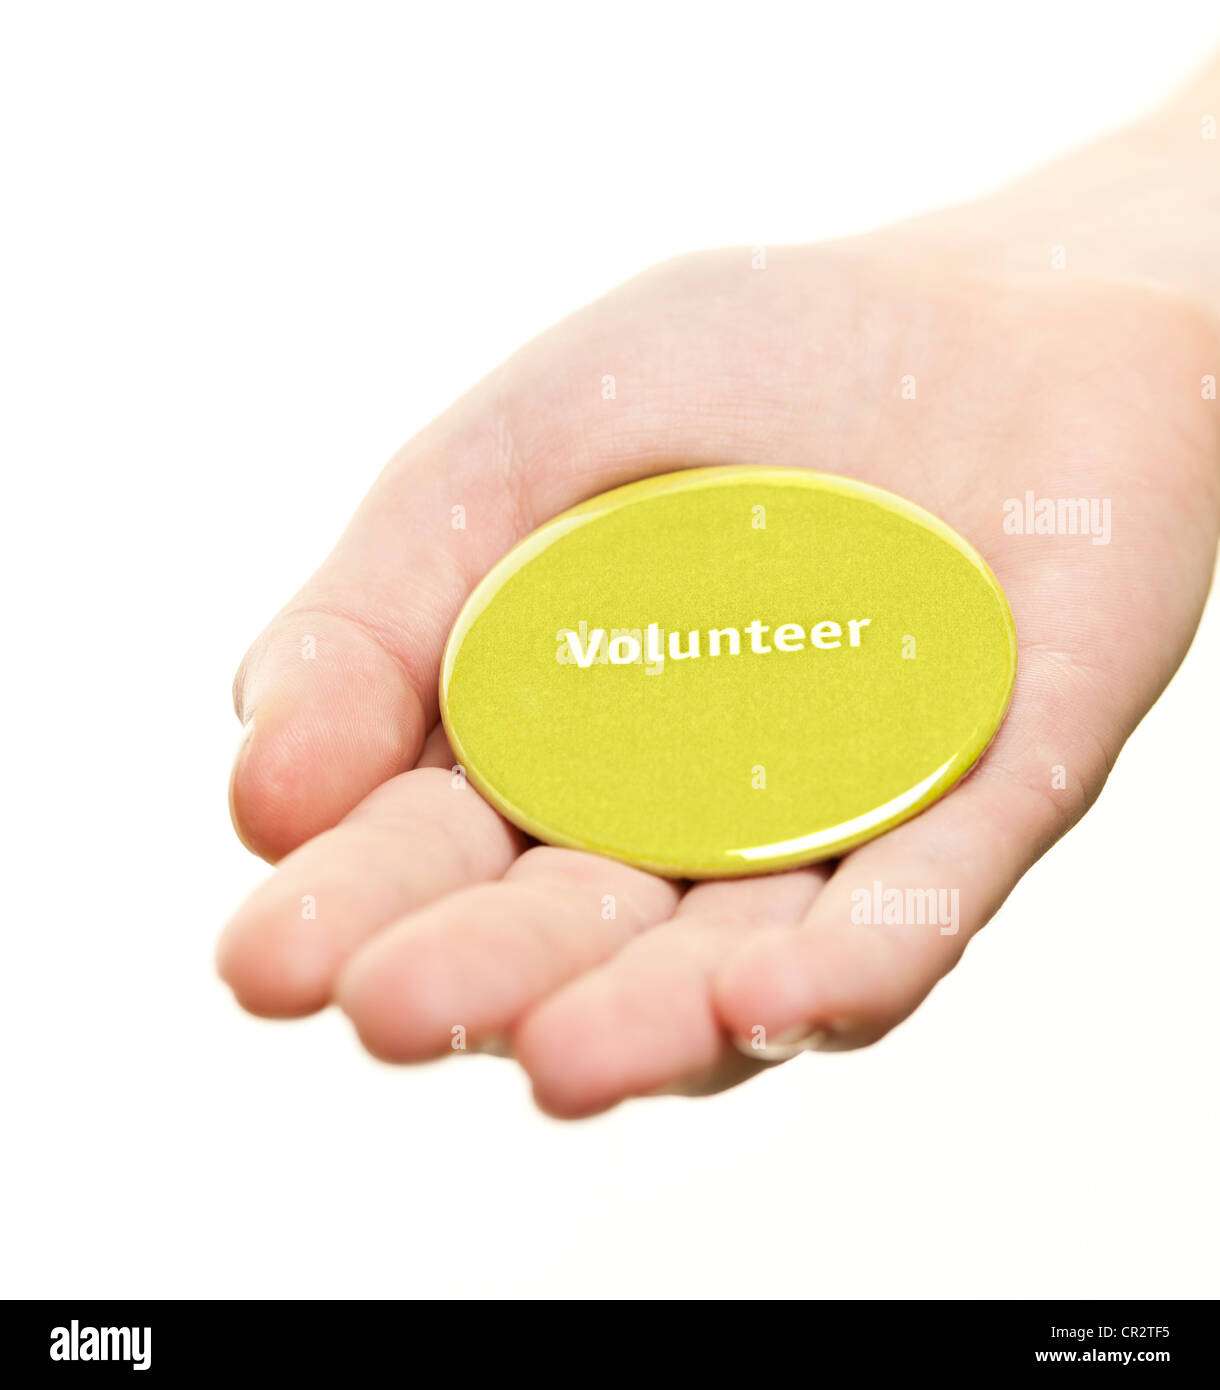 Hand holding green round volunteer button isolated on white - Stock Image